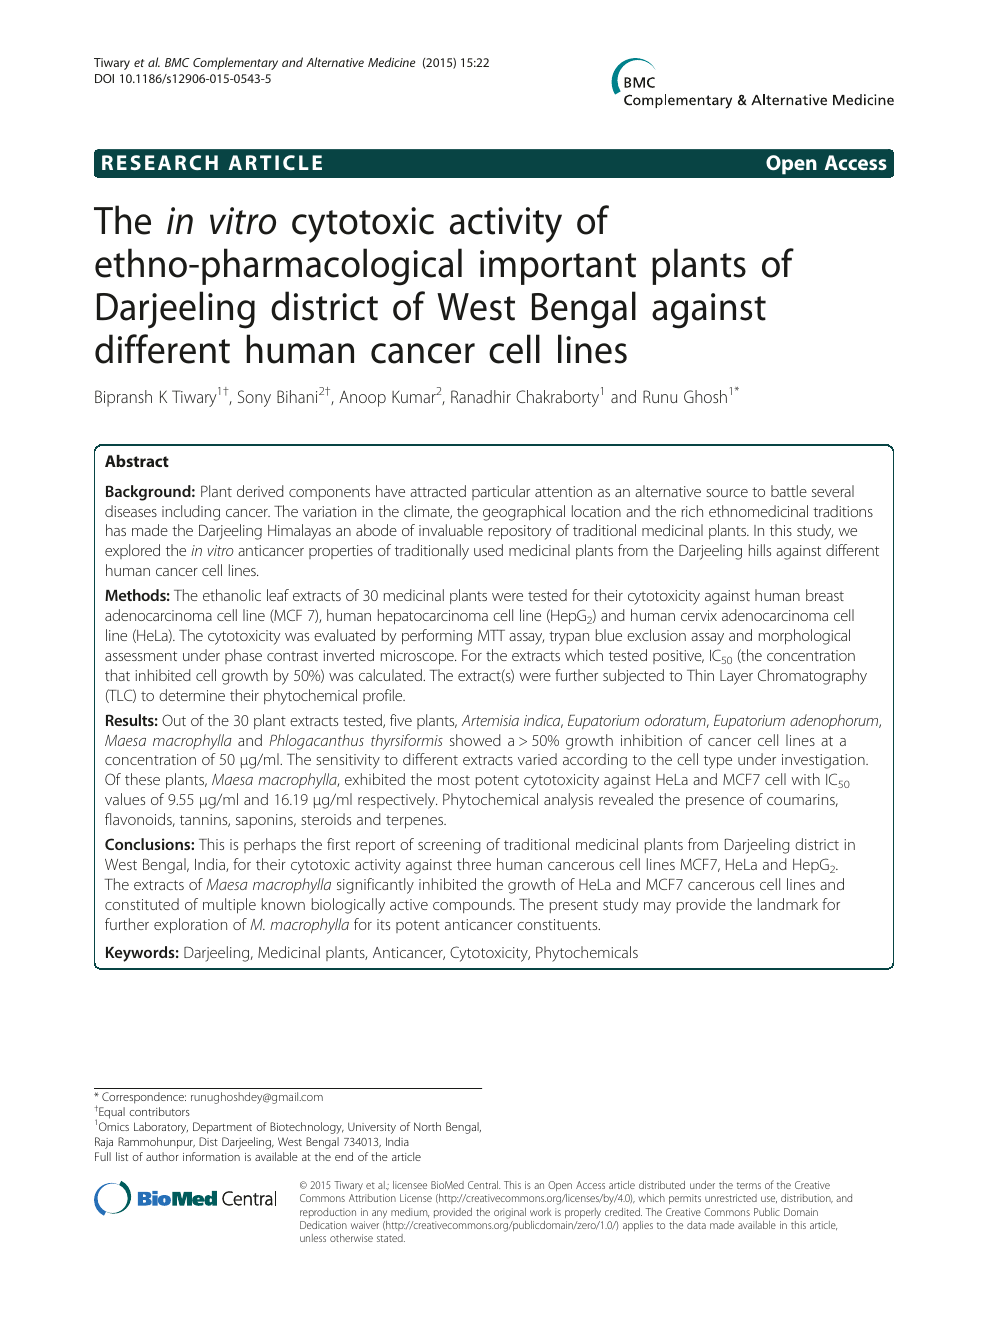 The in vitro cytotoxic activity of ethno-pharmacological important